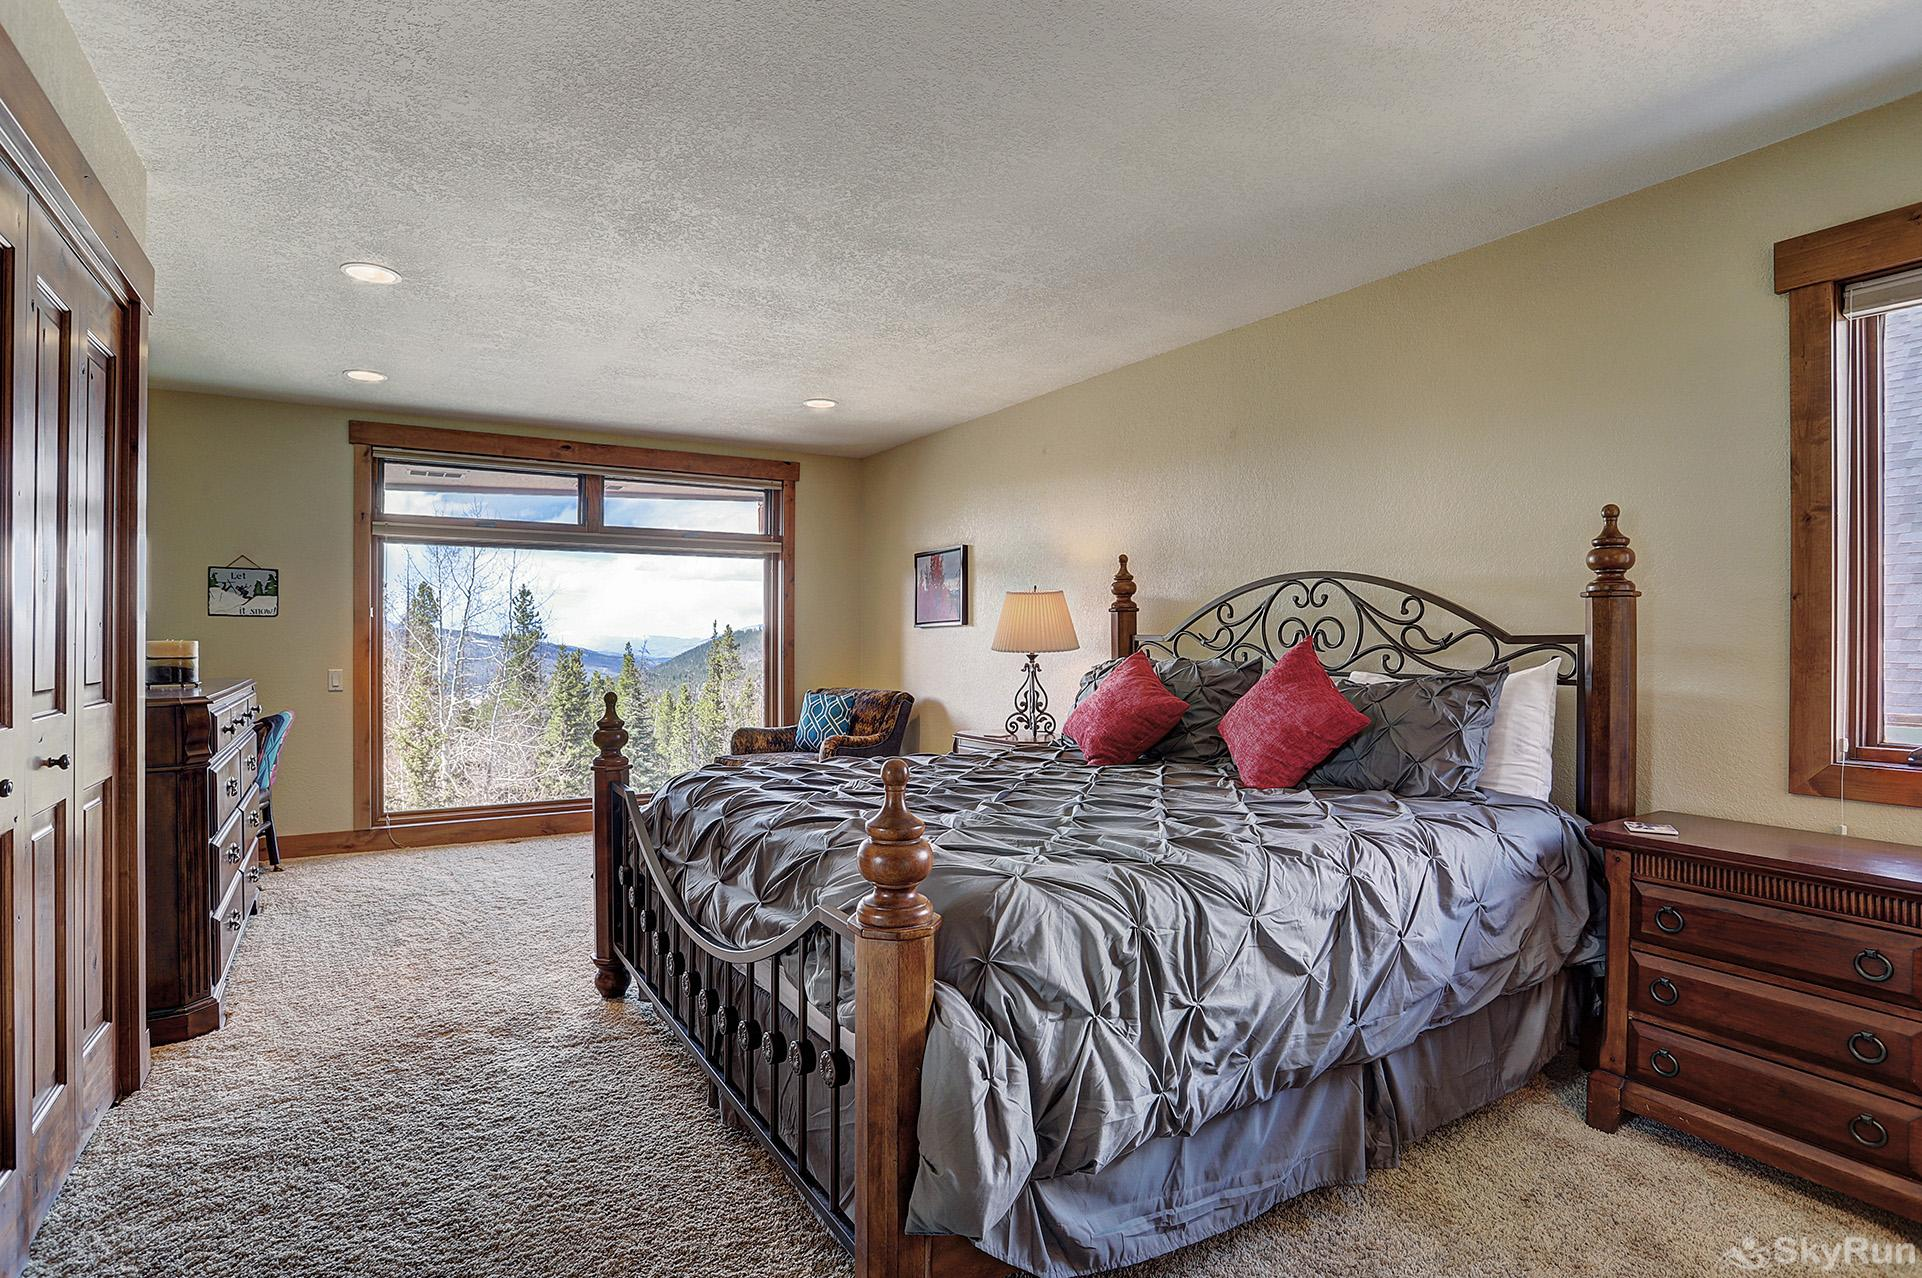 Happy Trails Upper level king bedroom with private balcony, ensuite bath